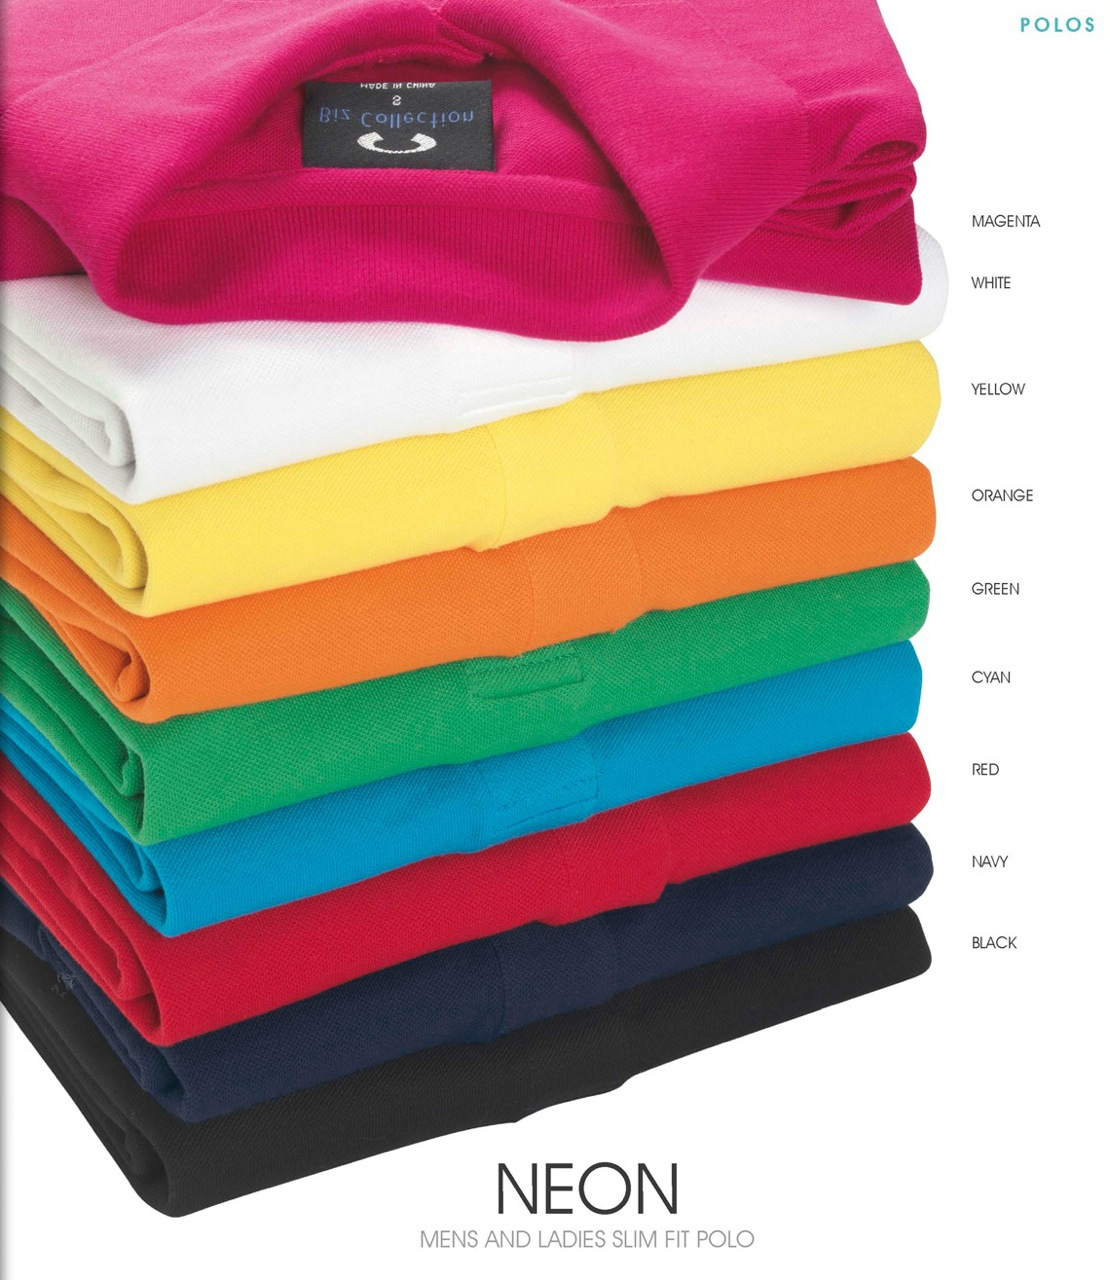 Neon men's and ladies slim fit polo.jpg